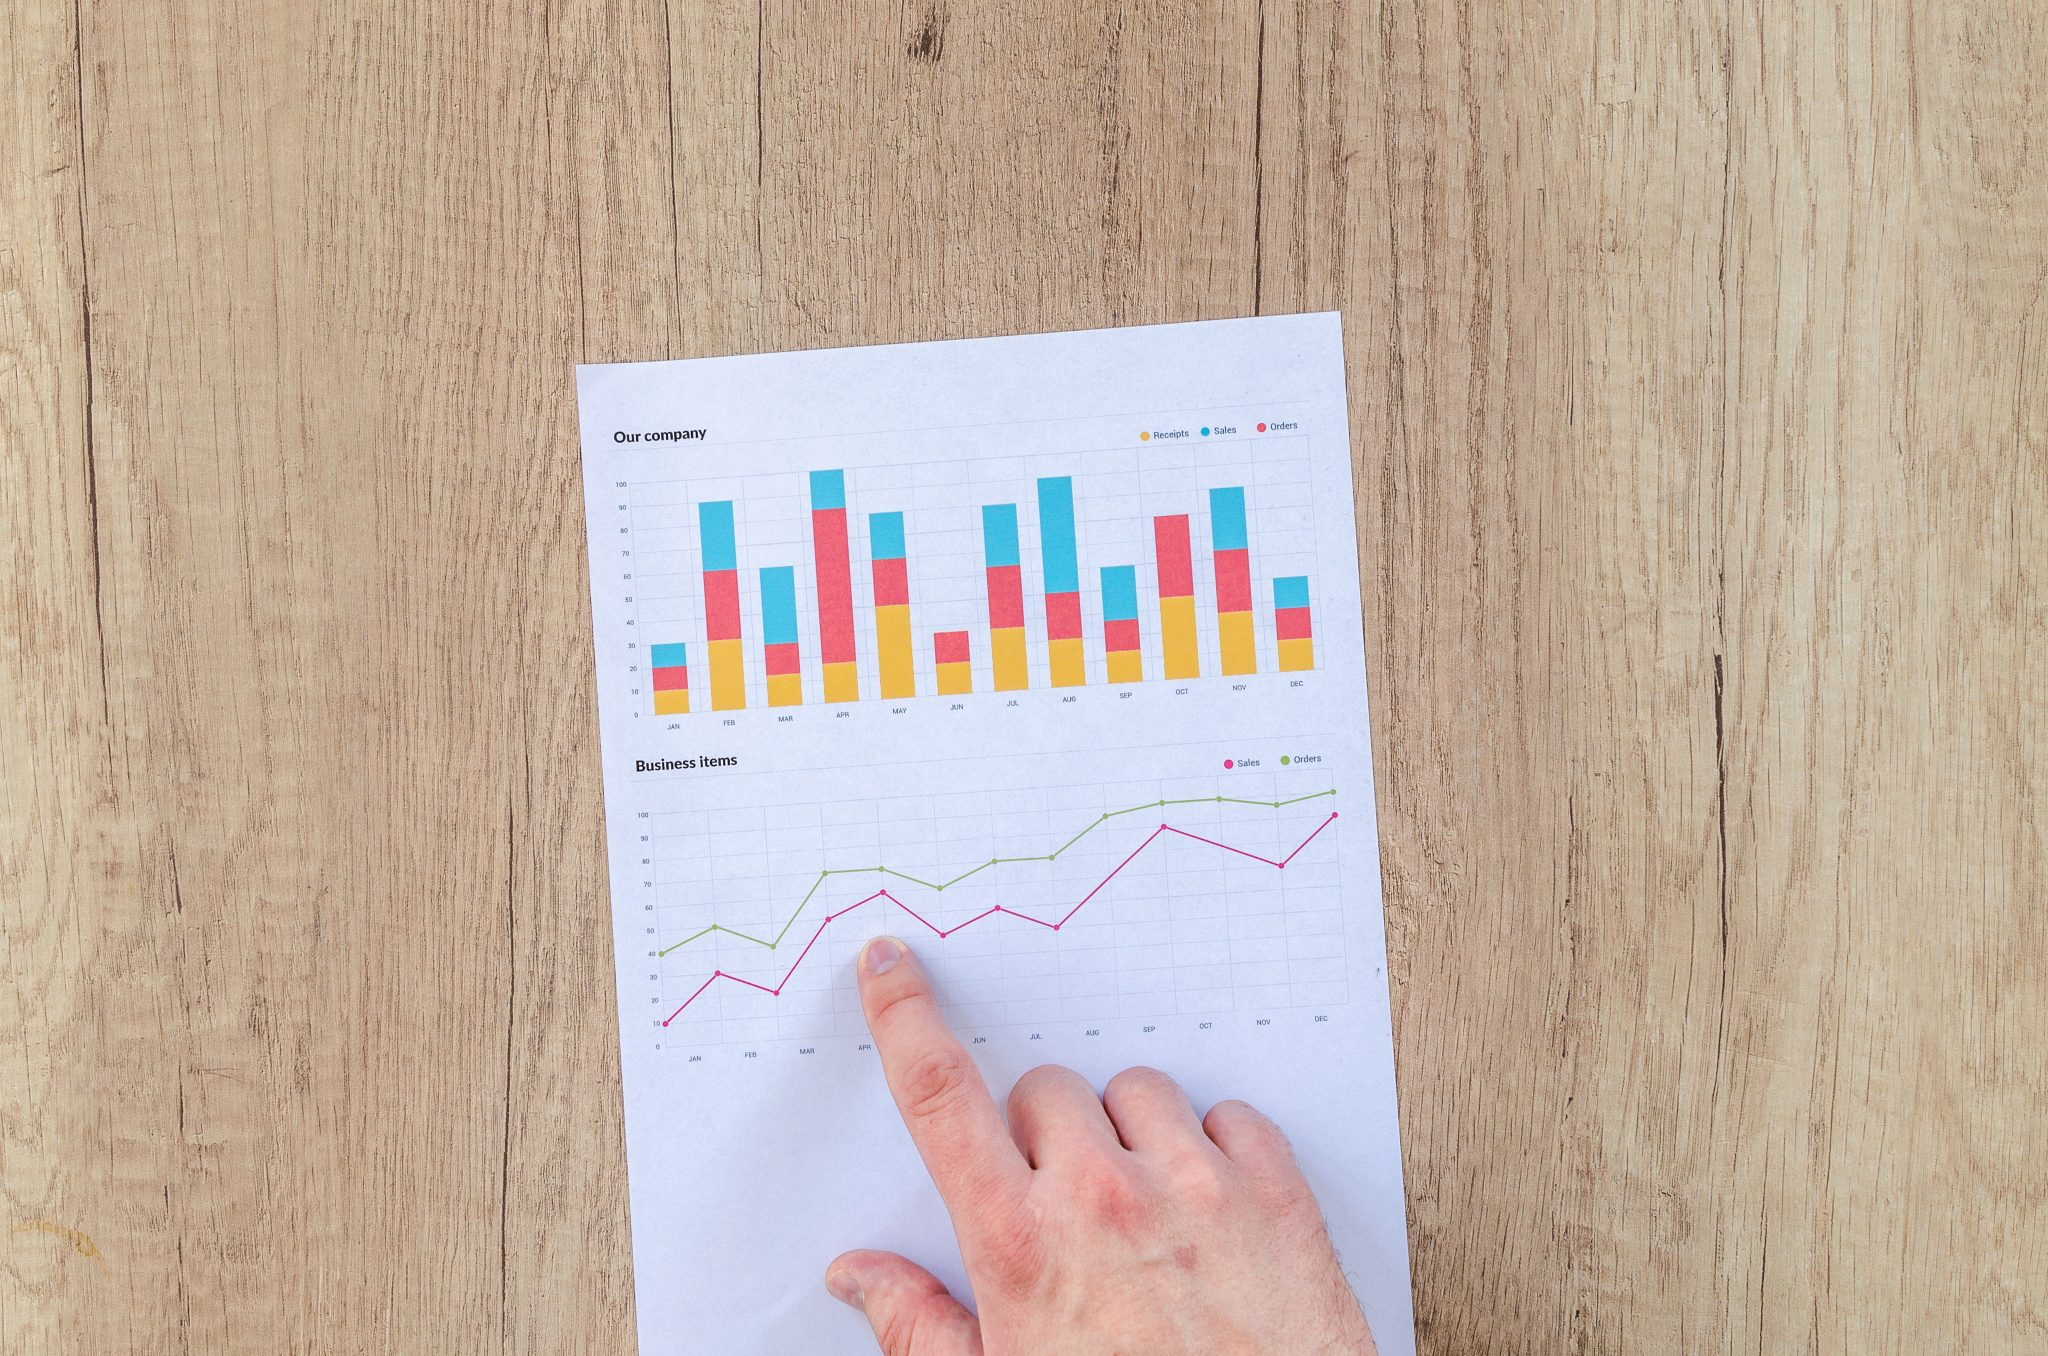 You should include all the important numbers, like KPIs and budget planning.